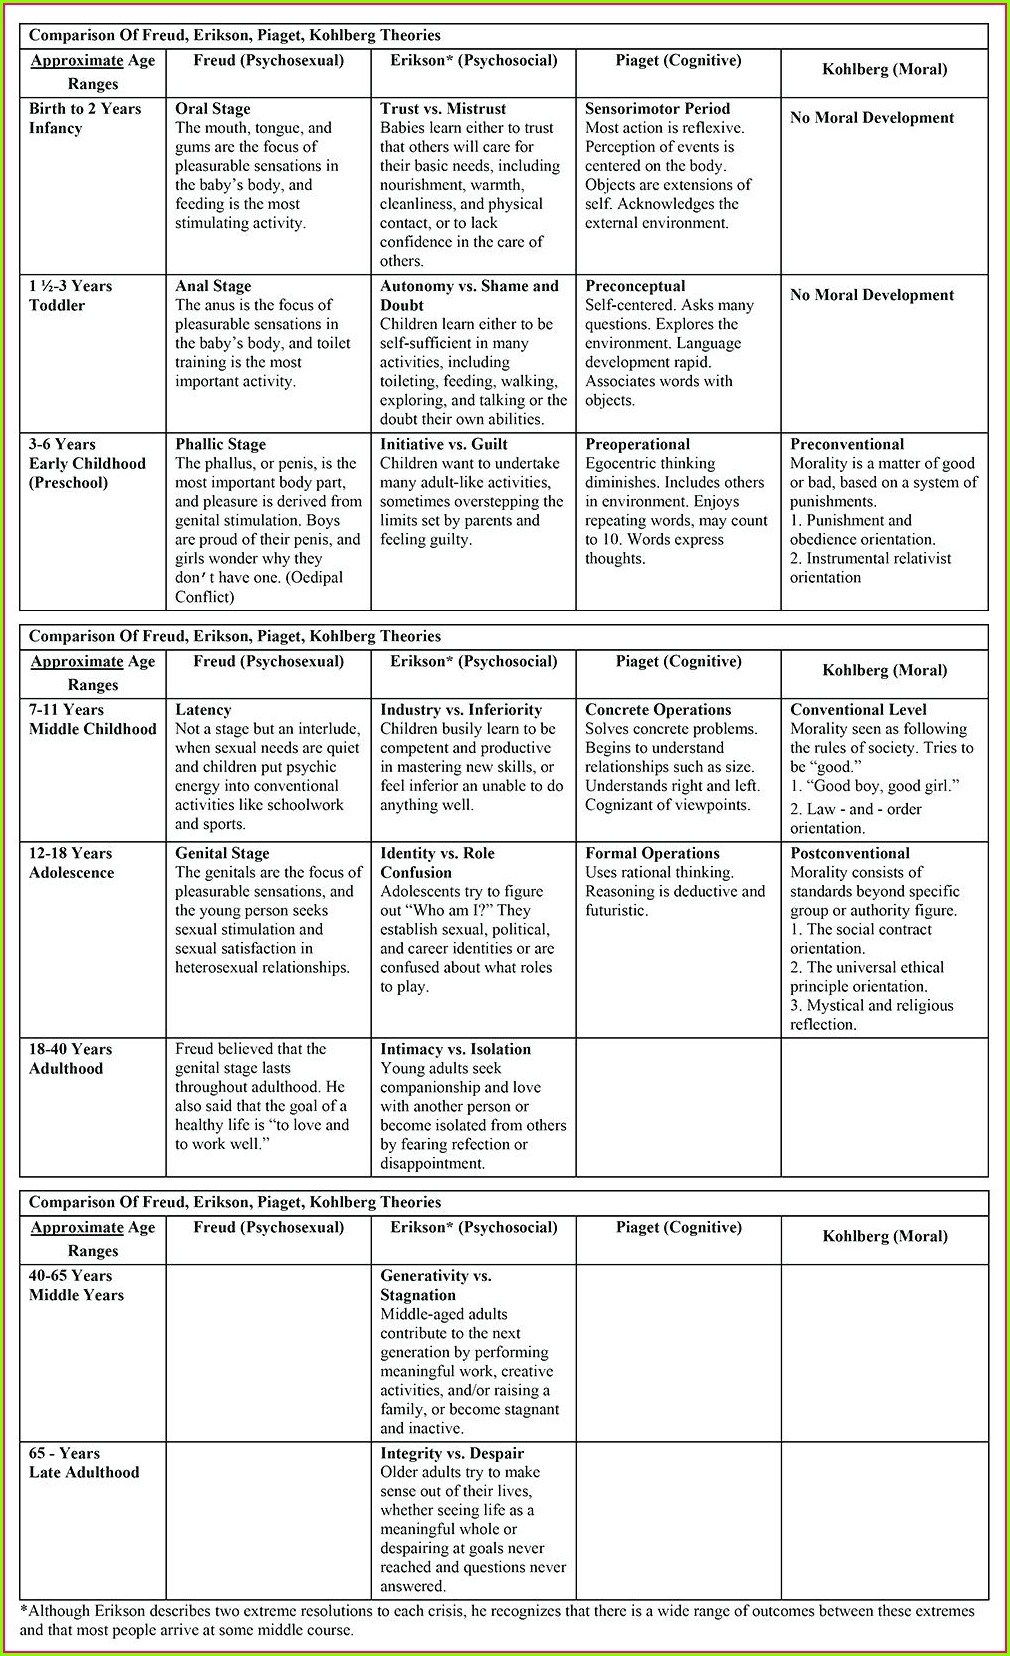 Child Development Theorists Video Worksheet Answers